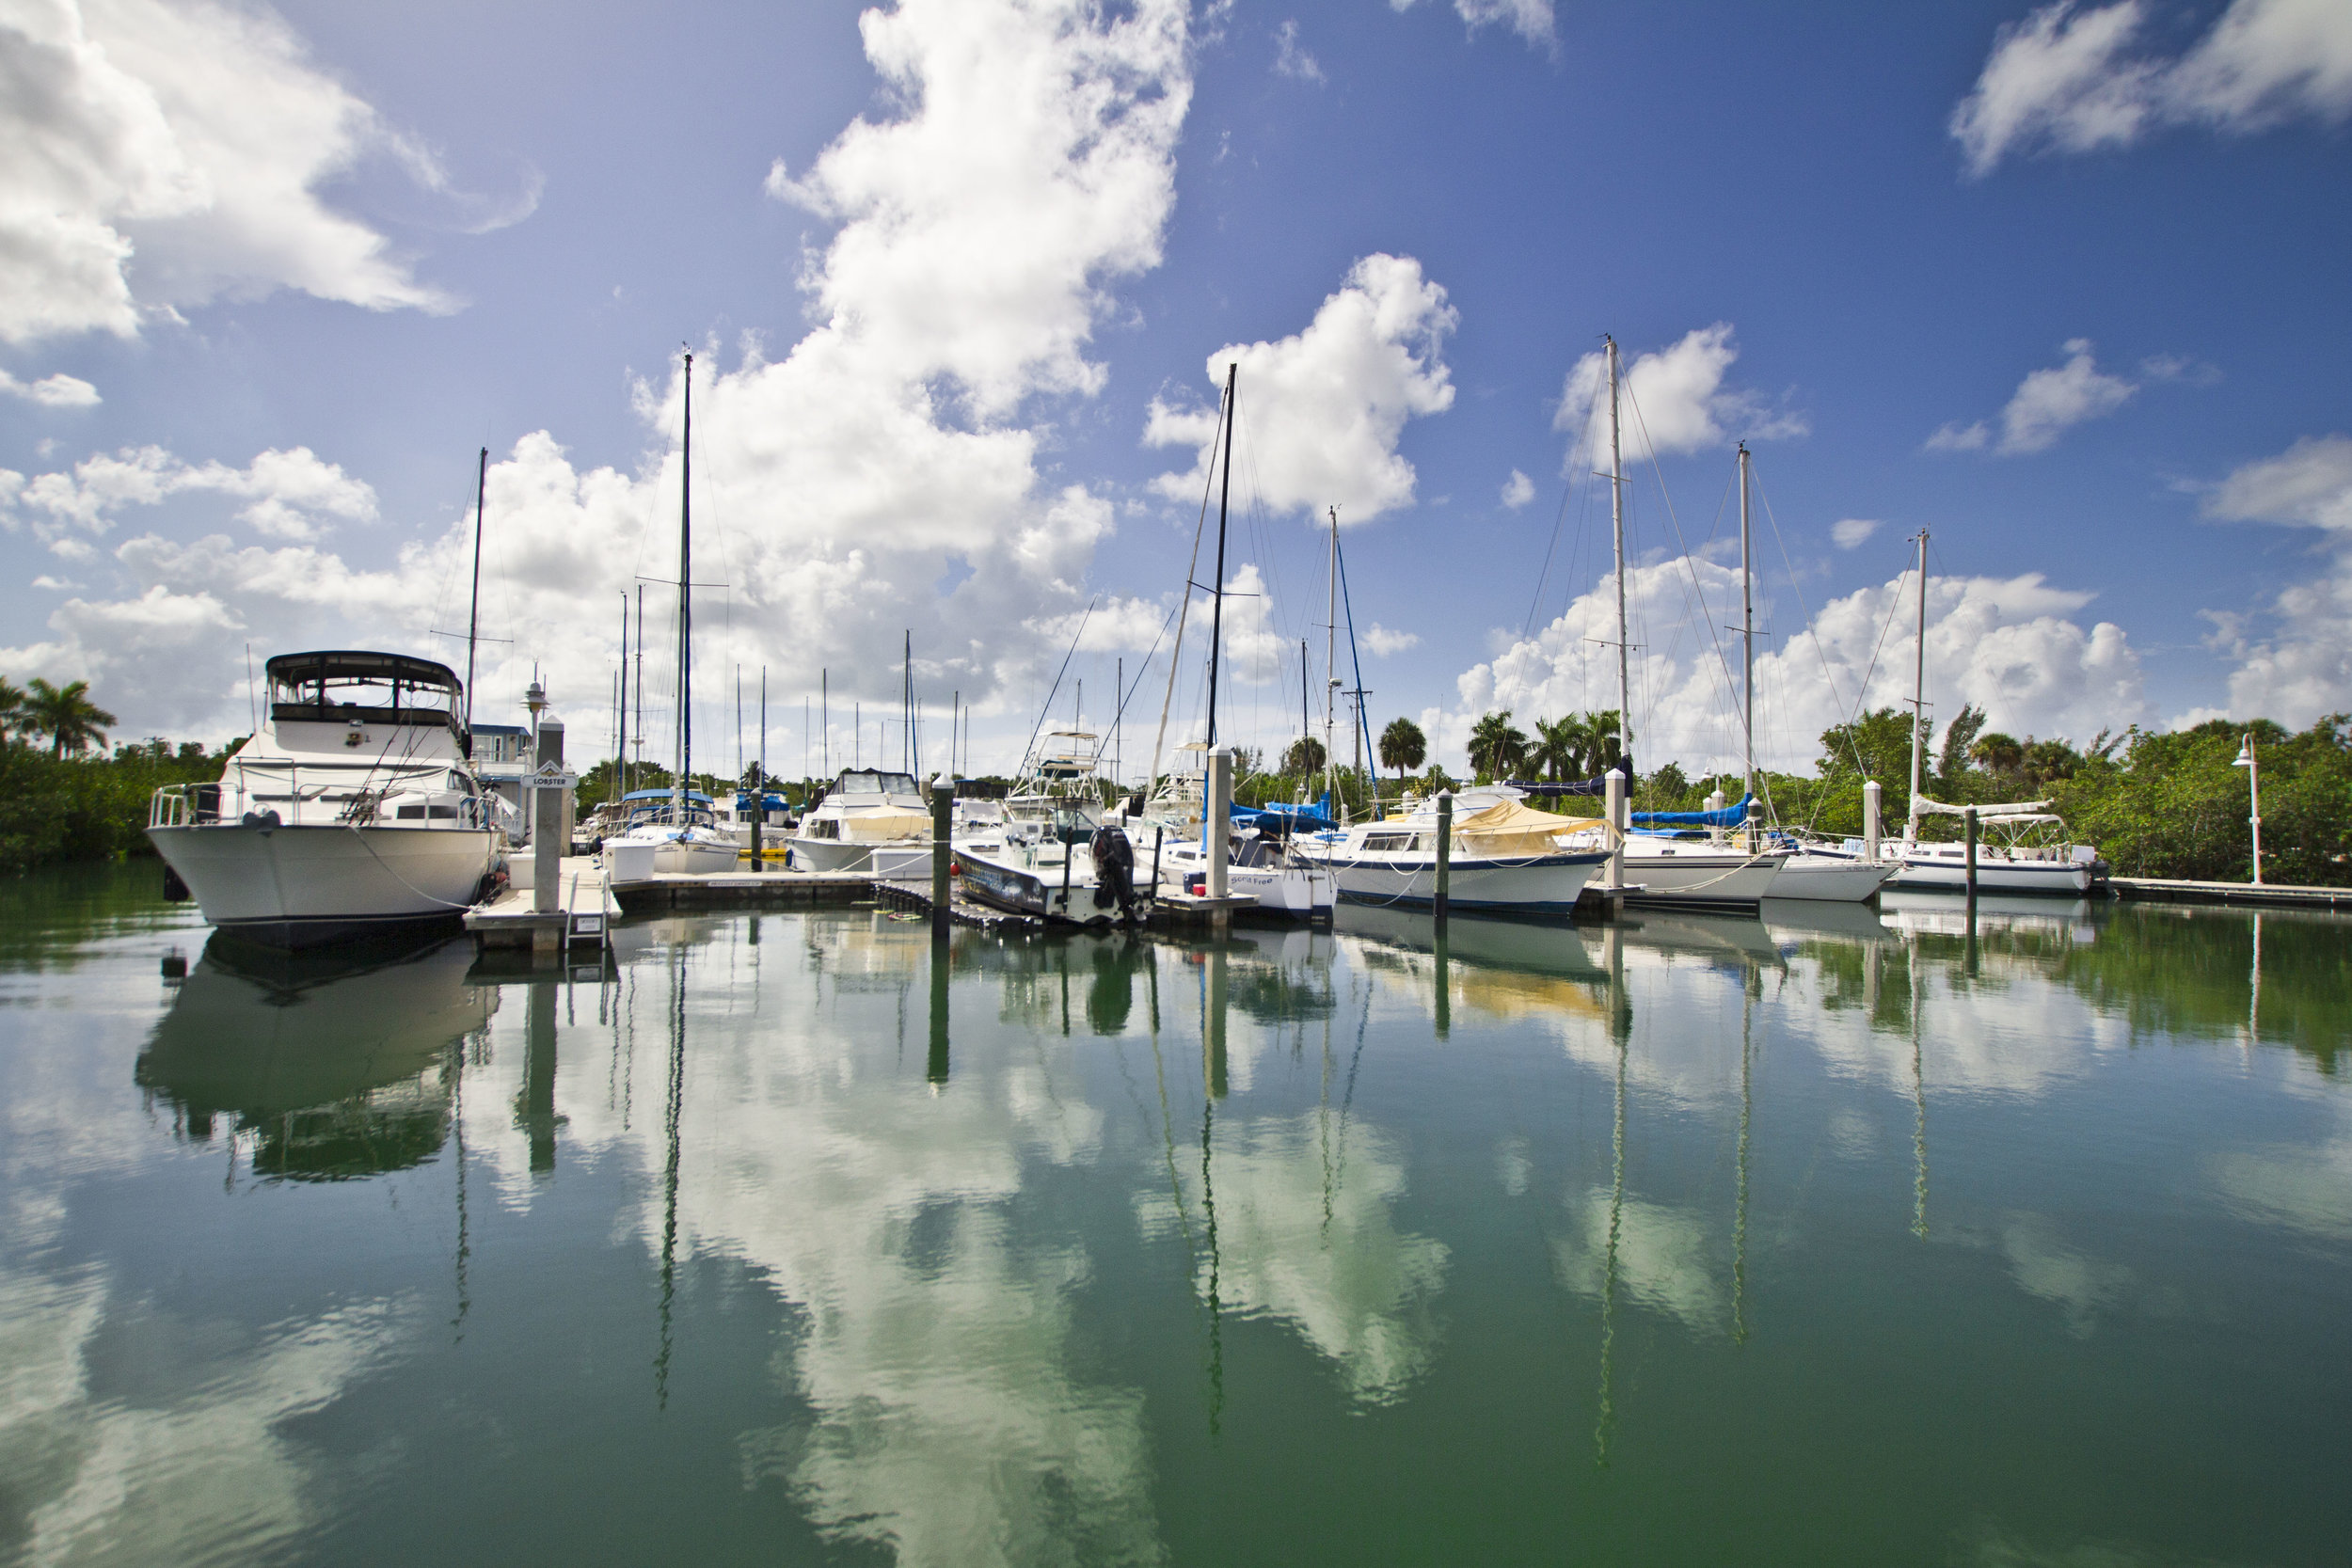 Location photography of Key West marina